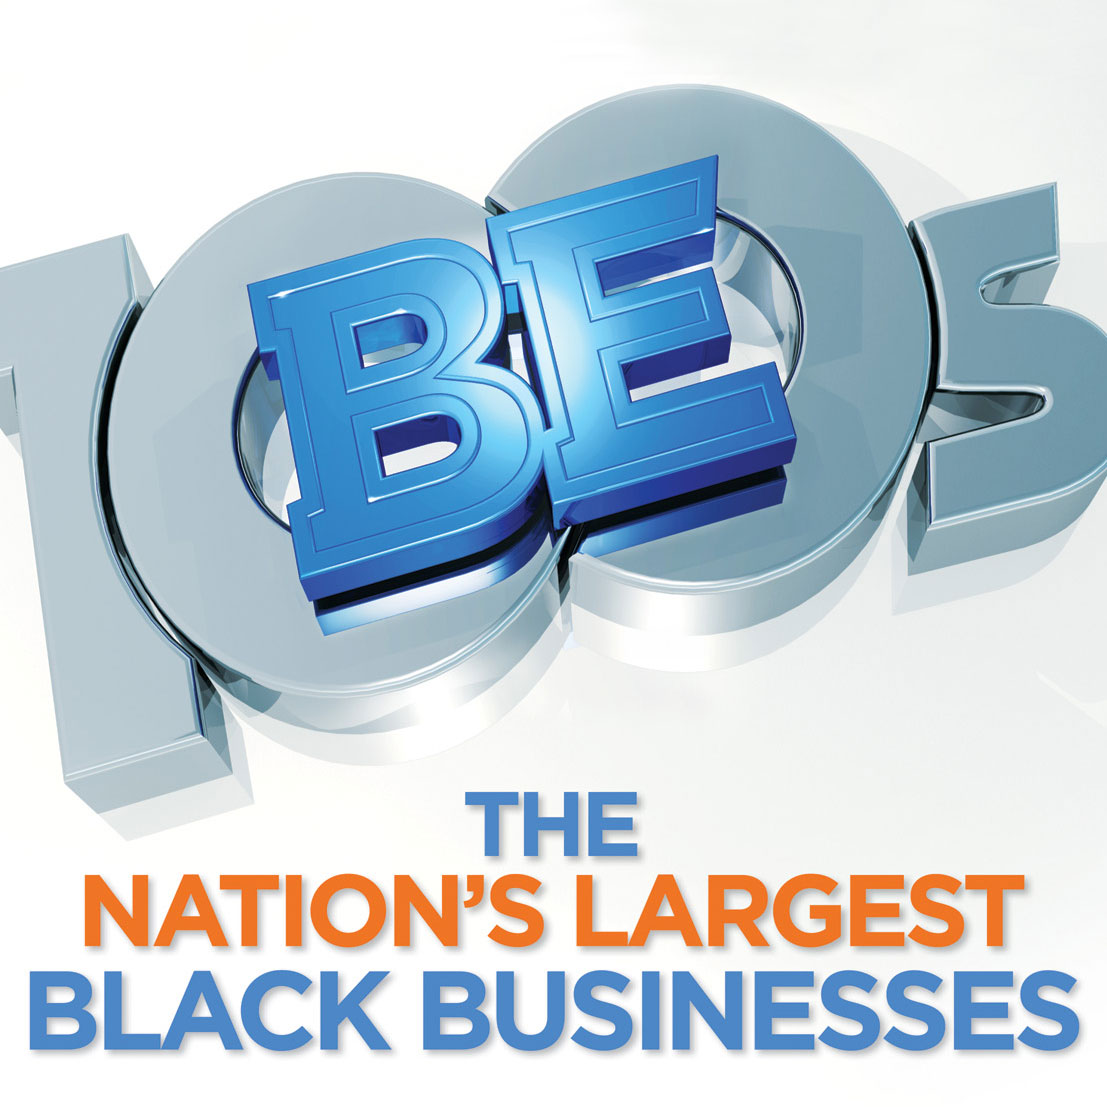 In 2012, the BE100s turned 40----that is, Black Enterprise marked 40 years of chronicling the largest black-owned businesses in the country. Each year we welcome new companies to our annual lists. 